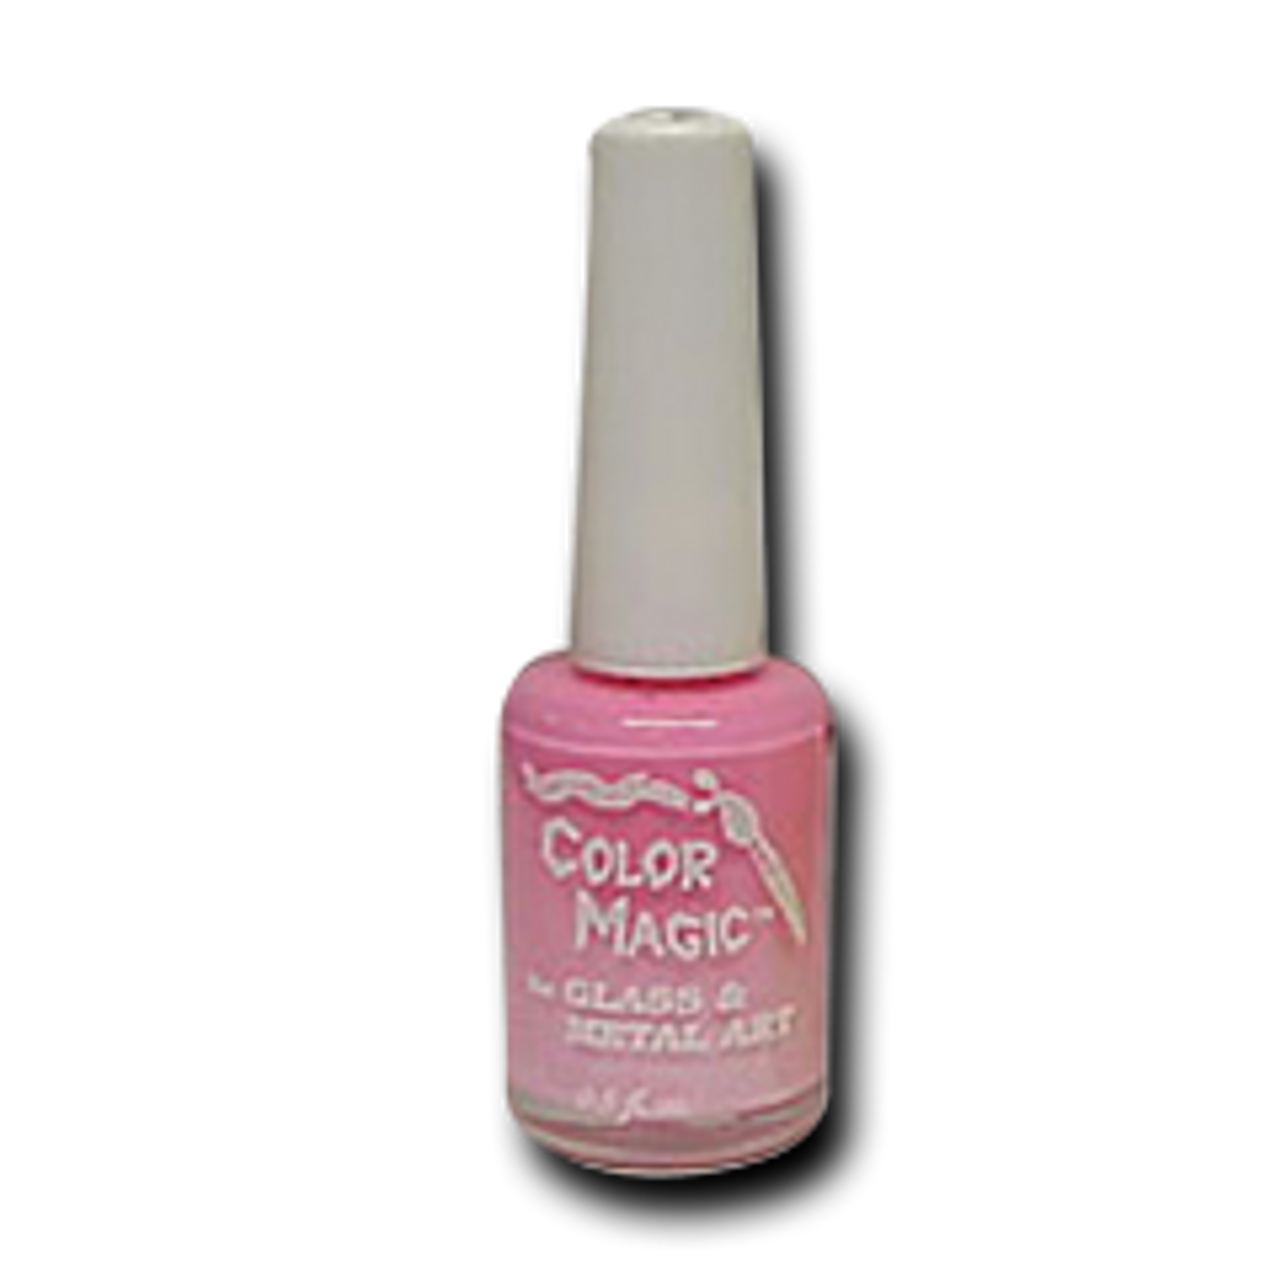 PINK Opaque Color Magic multi-surface/glass paint